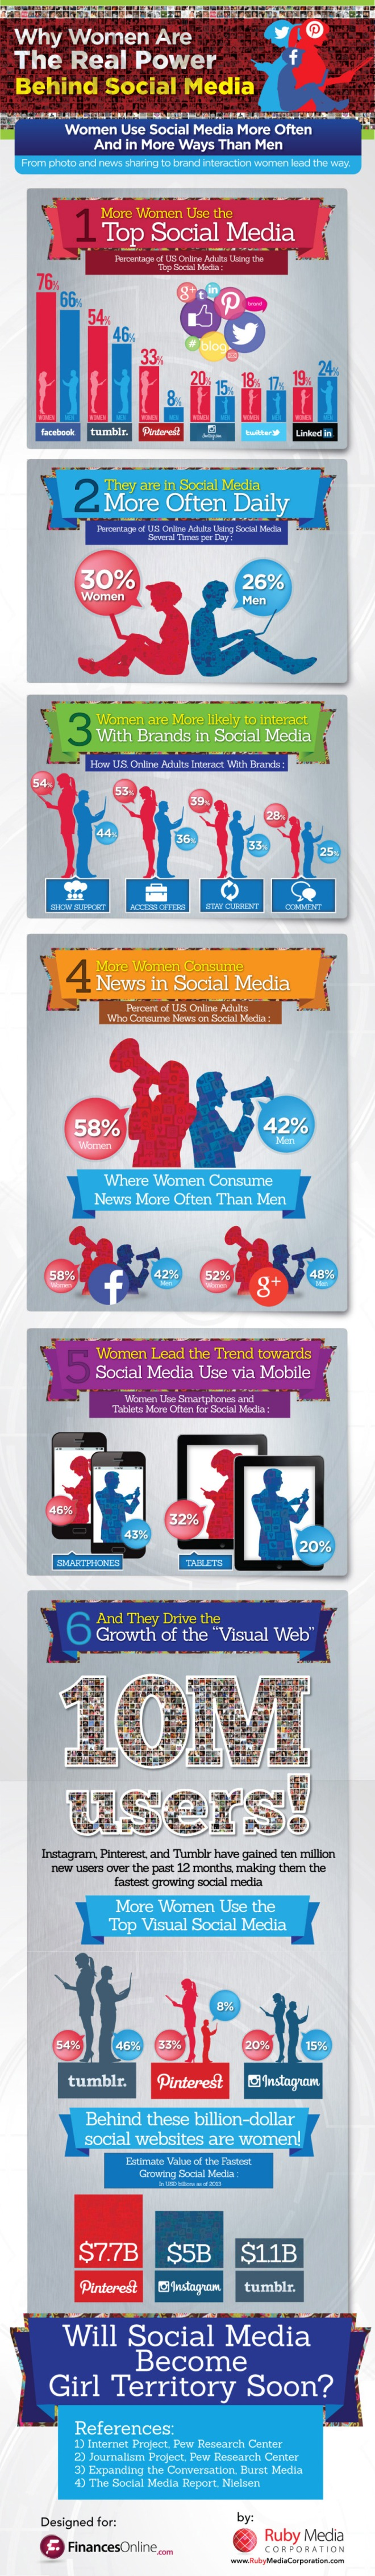 infografia_mujeres_redes_sociales